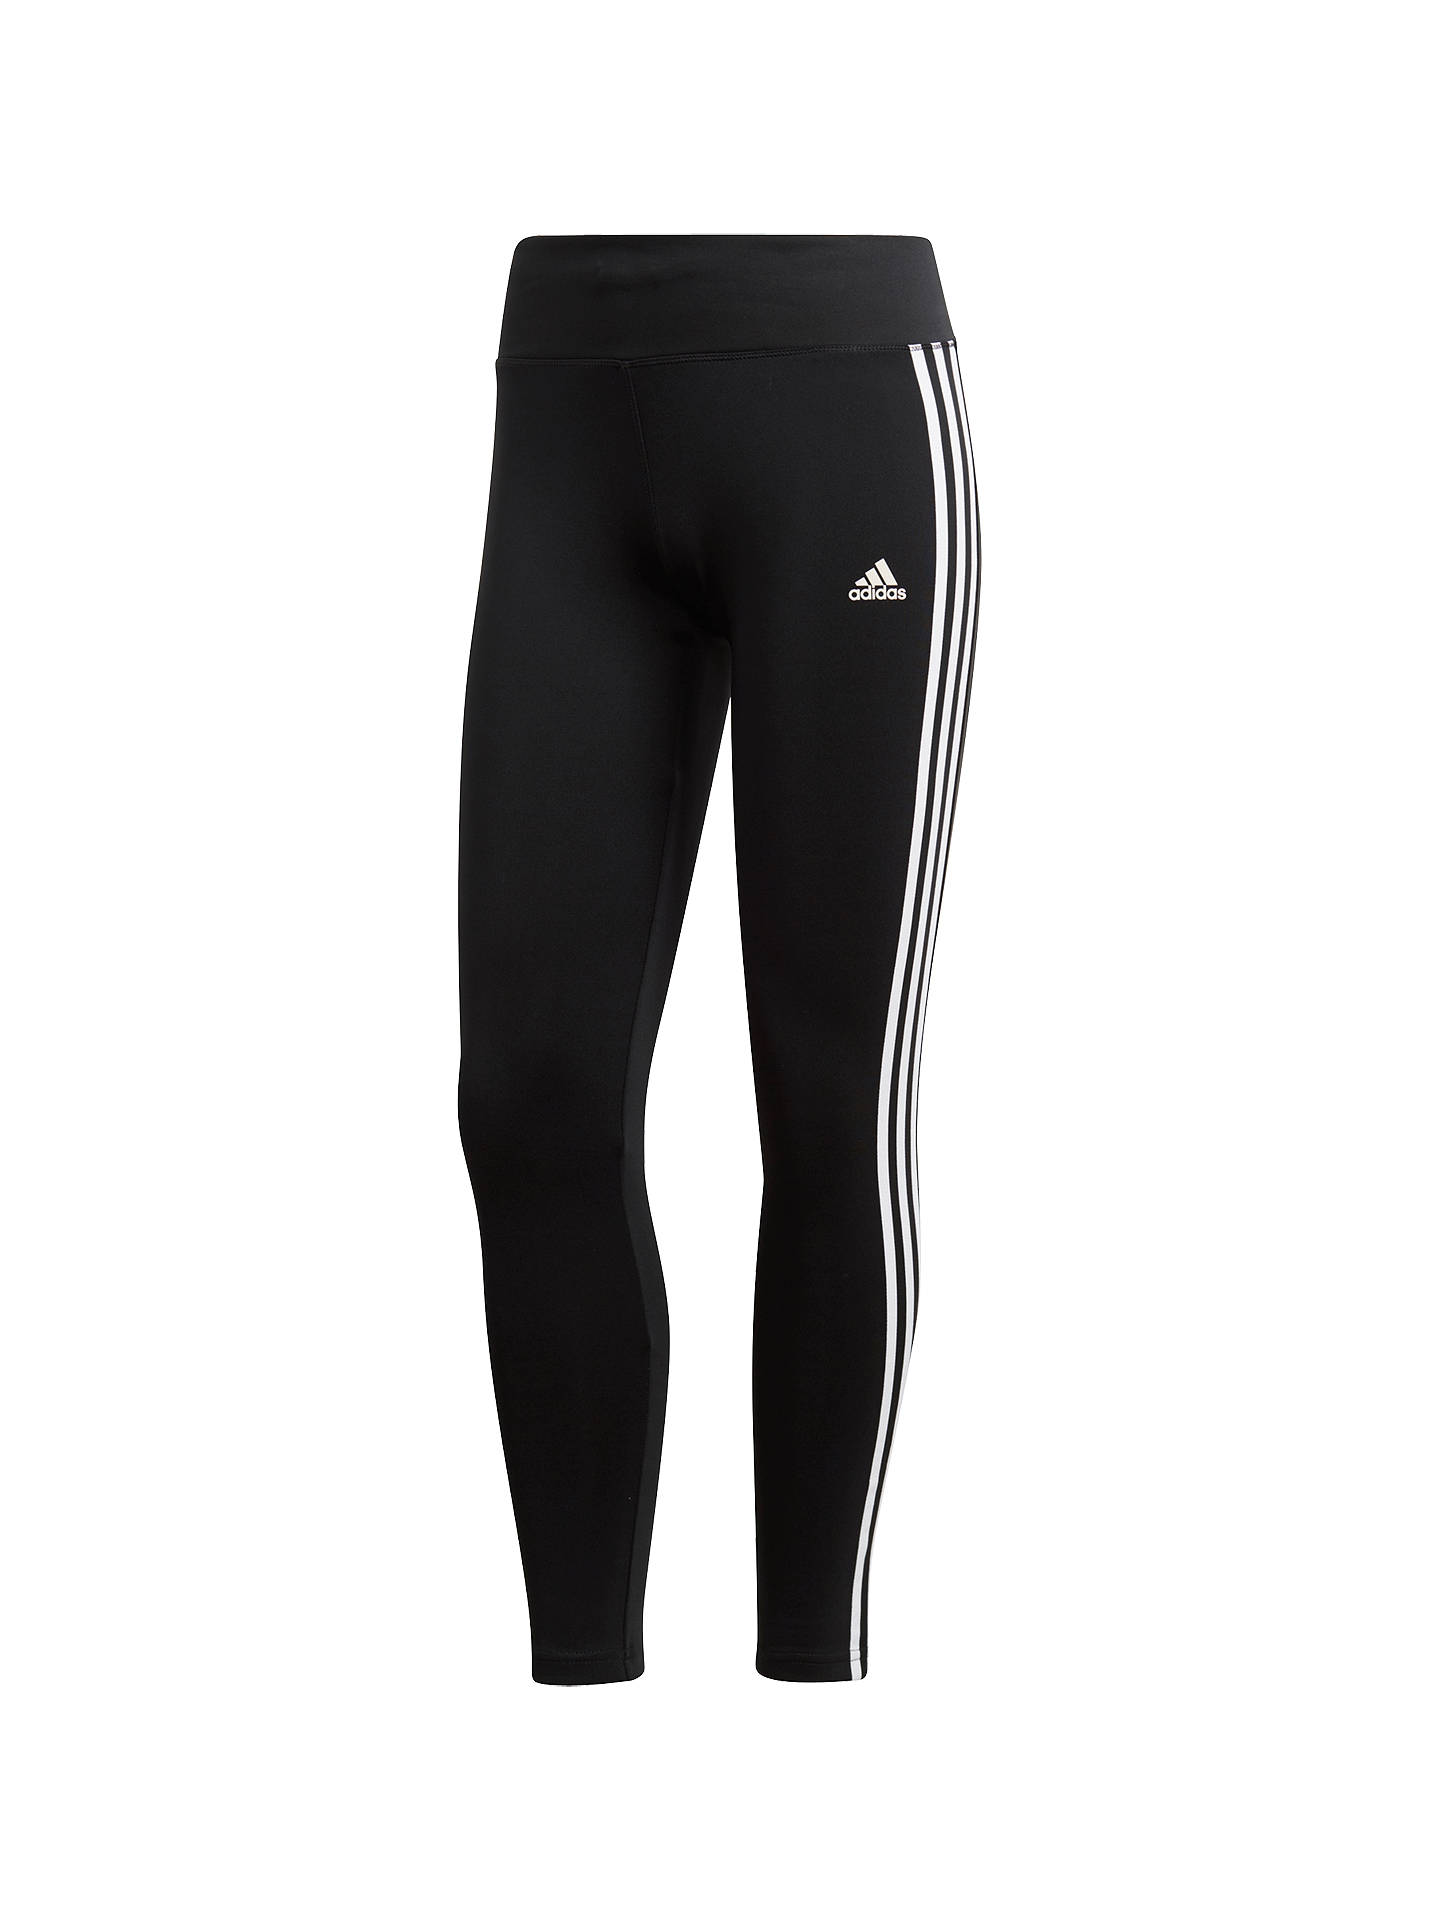 7fd7bf630d442 Buy adidas Designed 2 Move Climalite 3-Stripes Training Tights, Black, XS  Online ...